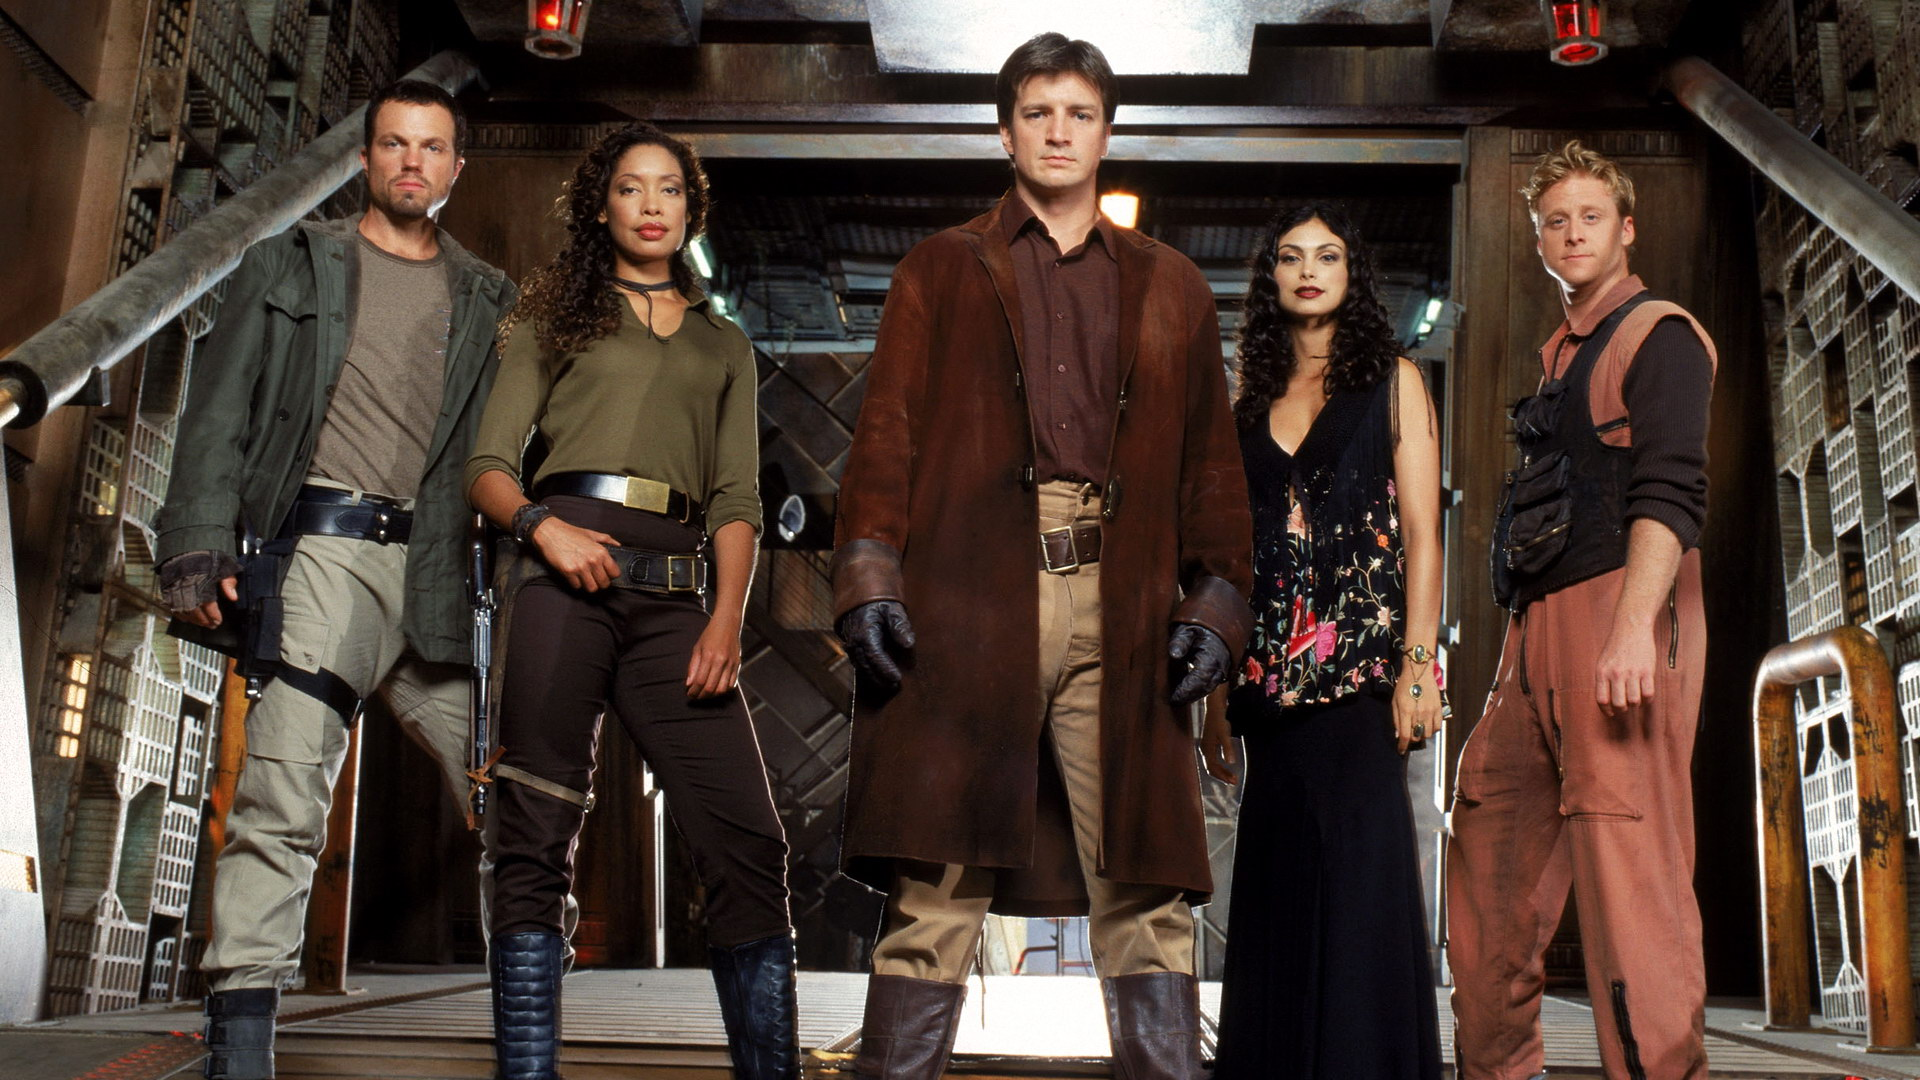 alan-tudyk-will-bring-firefly-cast-into-his-new-series-con-man